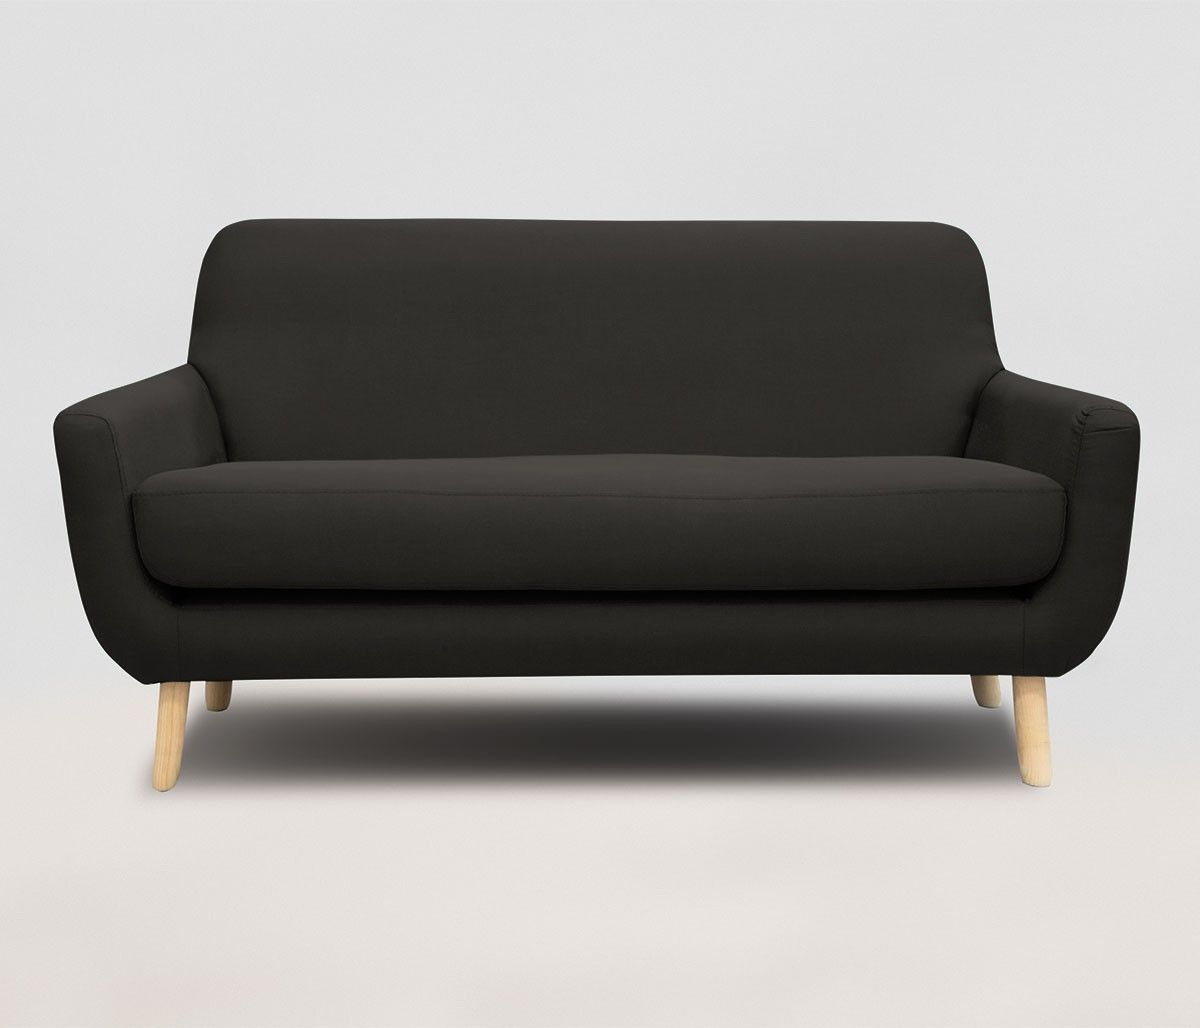 Sof jitotol loveseat sillones y sof s sentarse for Muebles menzzo